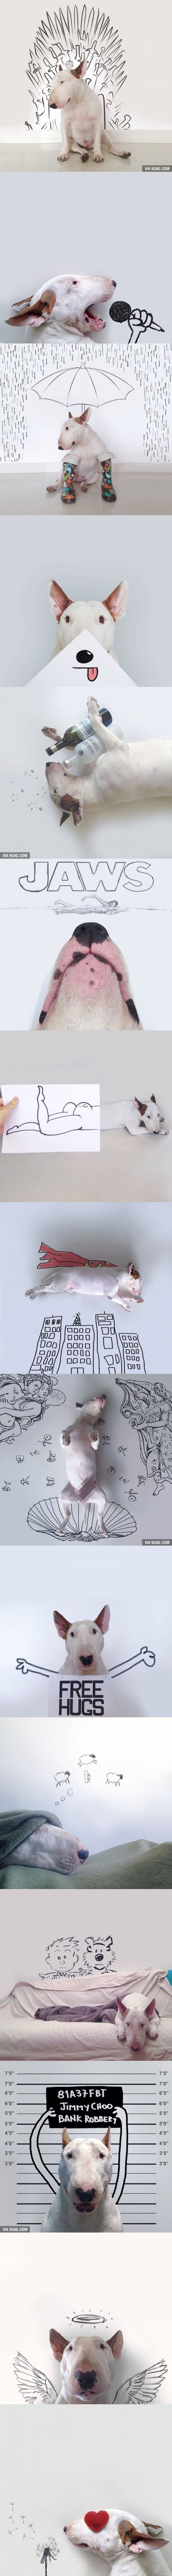 Dog-Loving Artist Draws Hilarious Sketches Inspired By His Bull Terrier (by Rafael Mantesso)